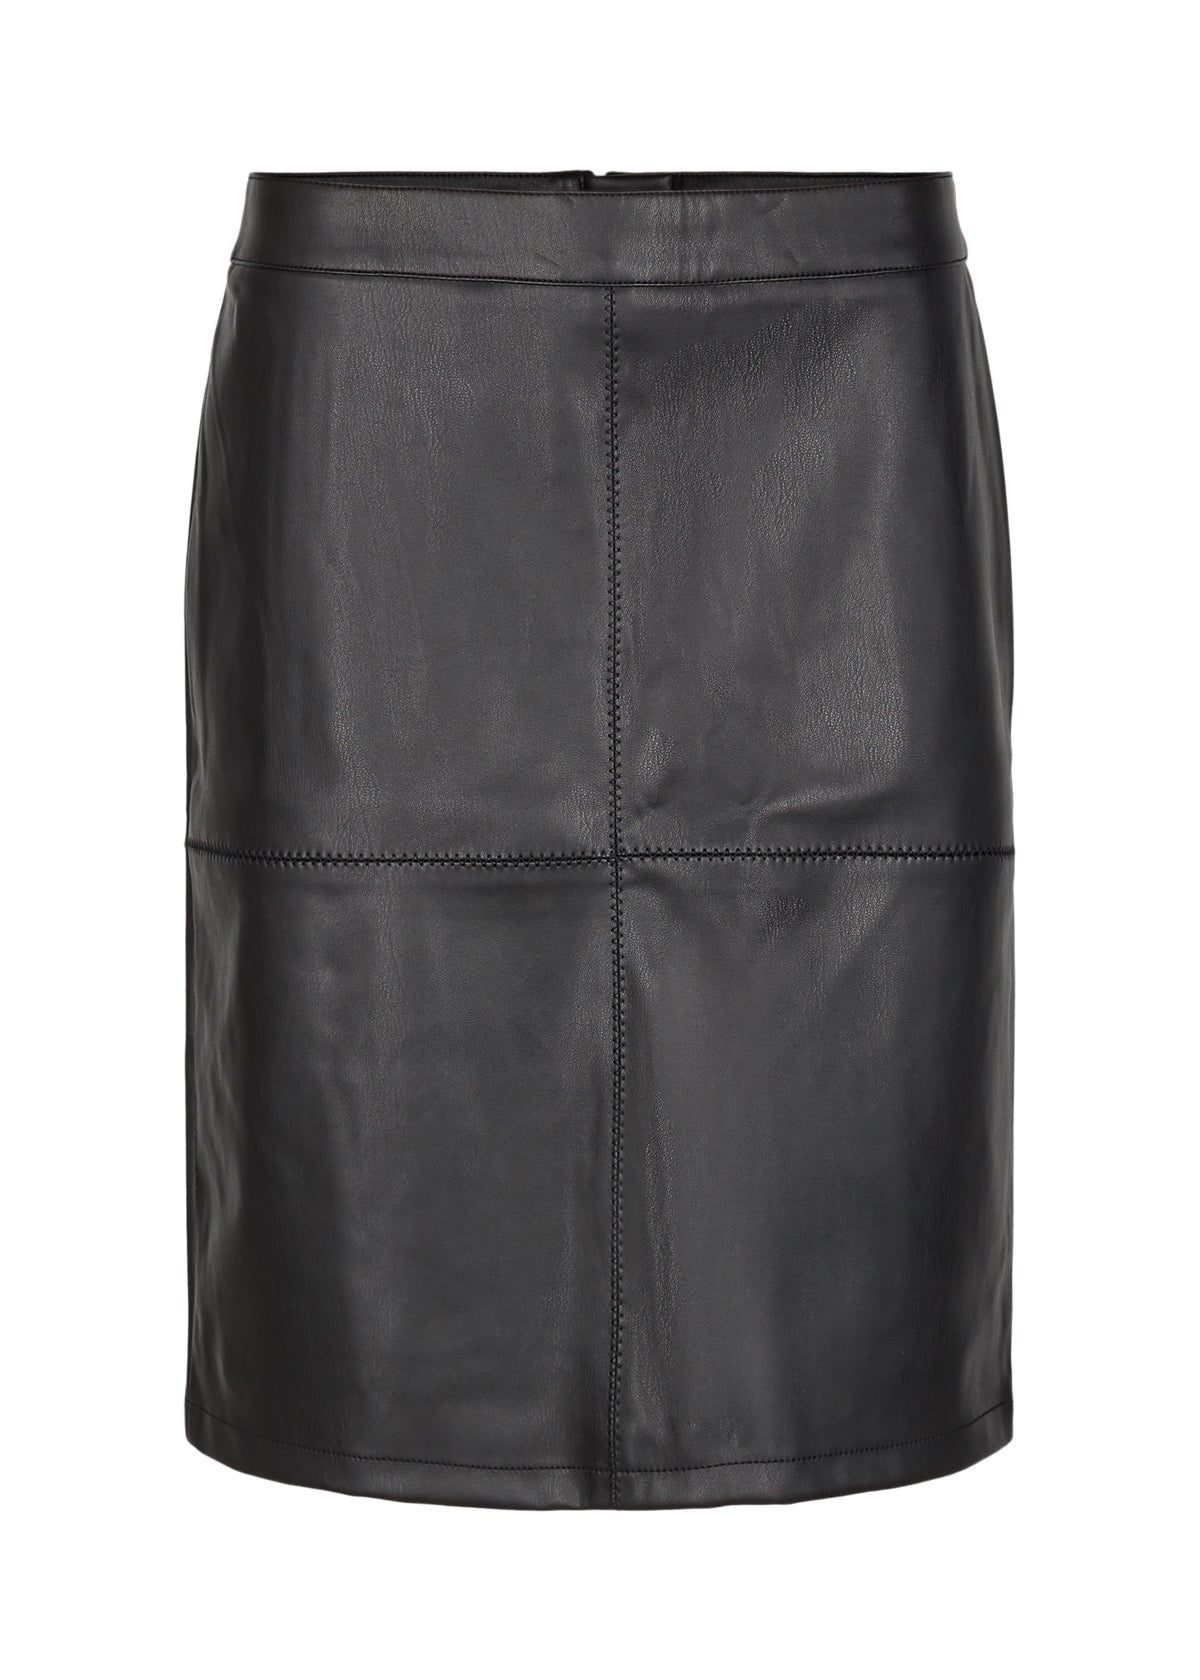 SOYA CONCEPT - SKIRT - 9999 BLACK